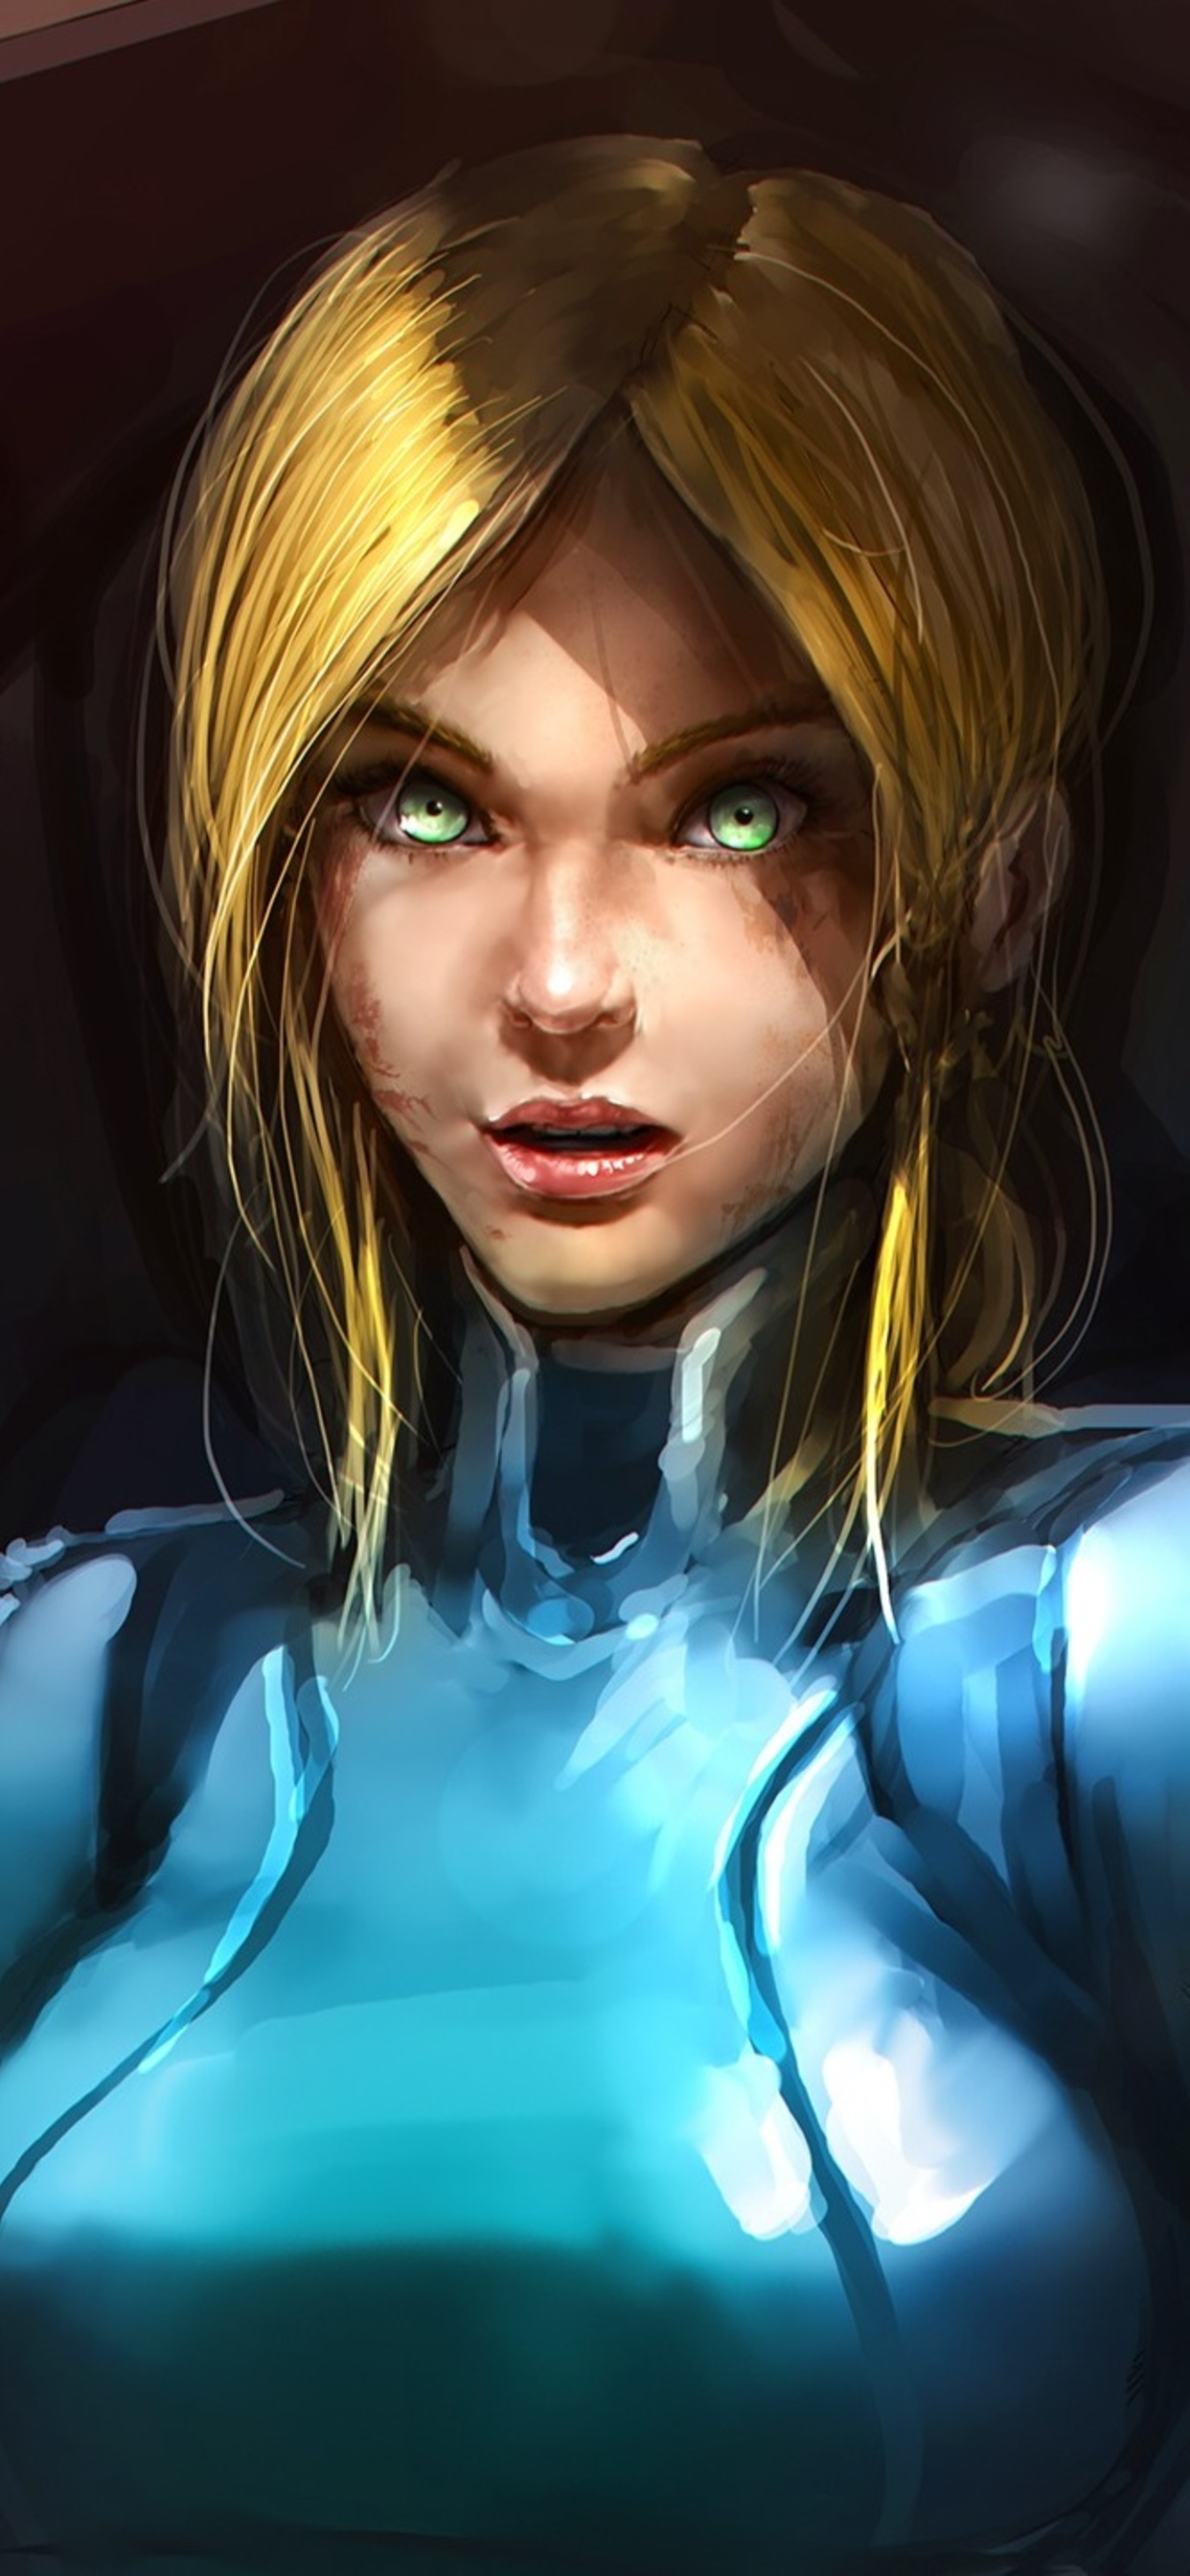 1242x2688 Samus Aran Metroid Iphone Xs Max Hd 4k Wallpapers Images Backgrounds Photos And Pictures